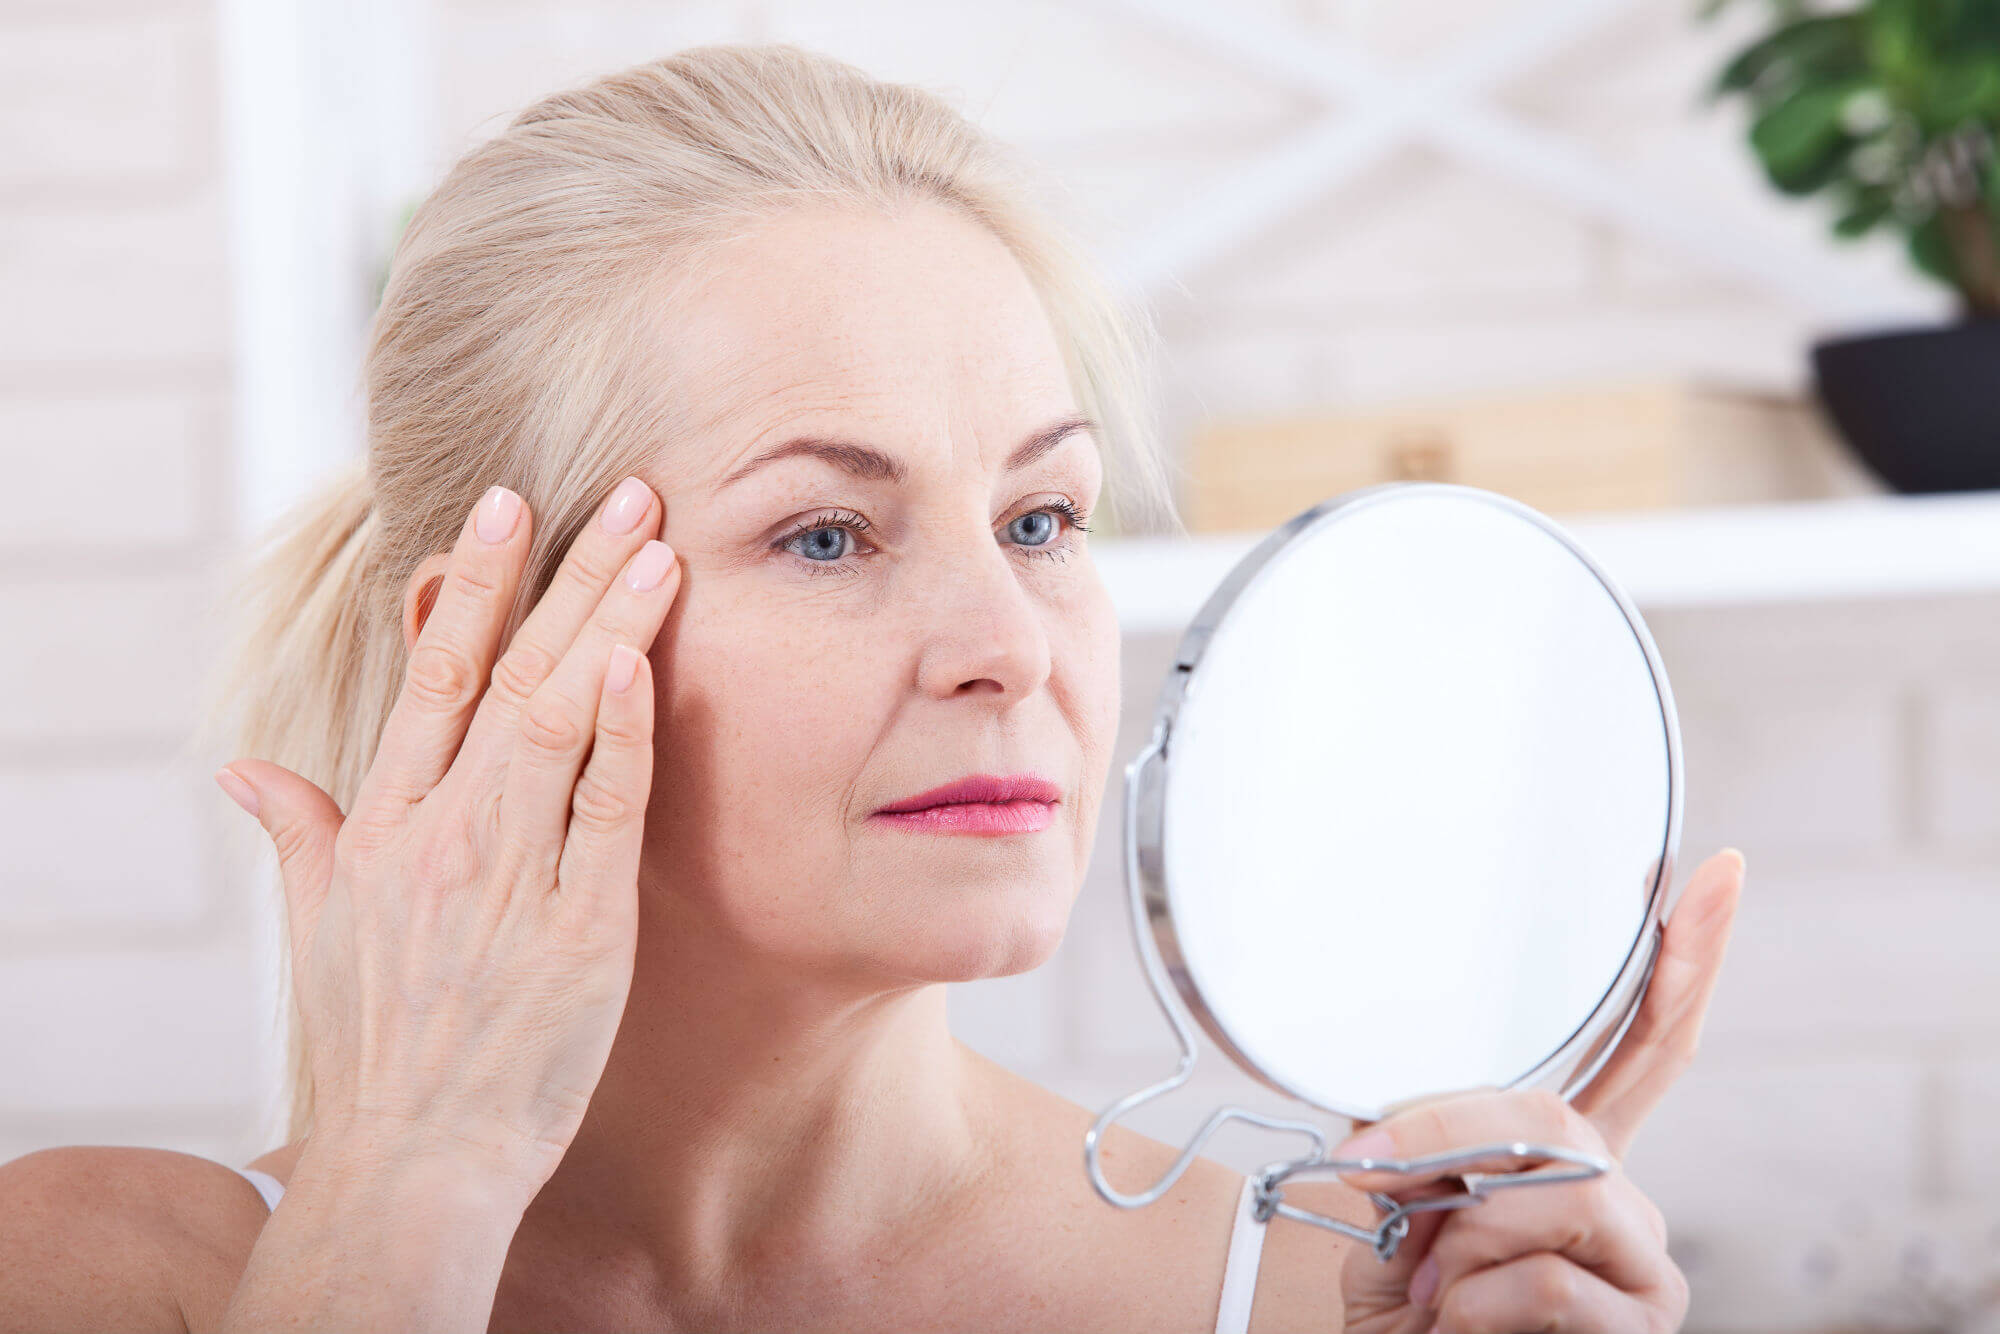 Sagging skin - Early Signs of Aging